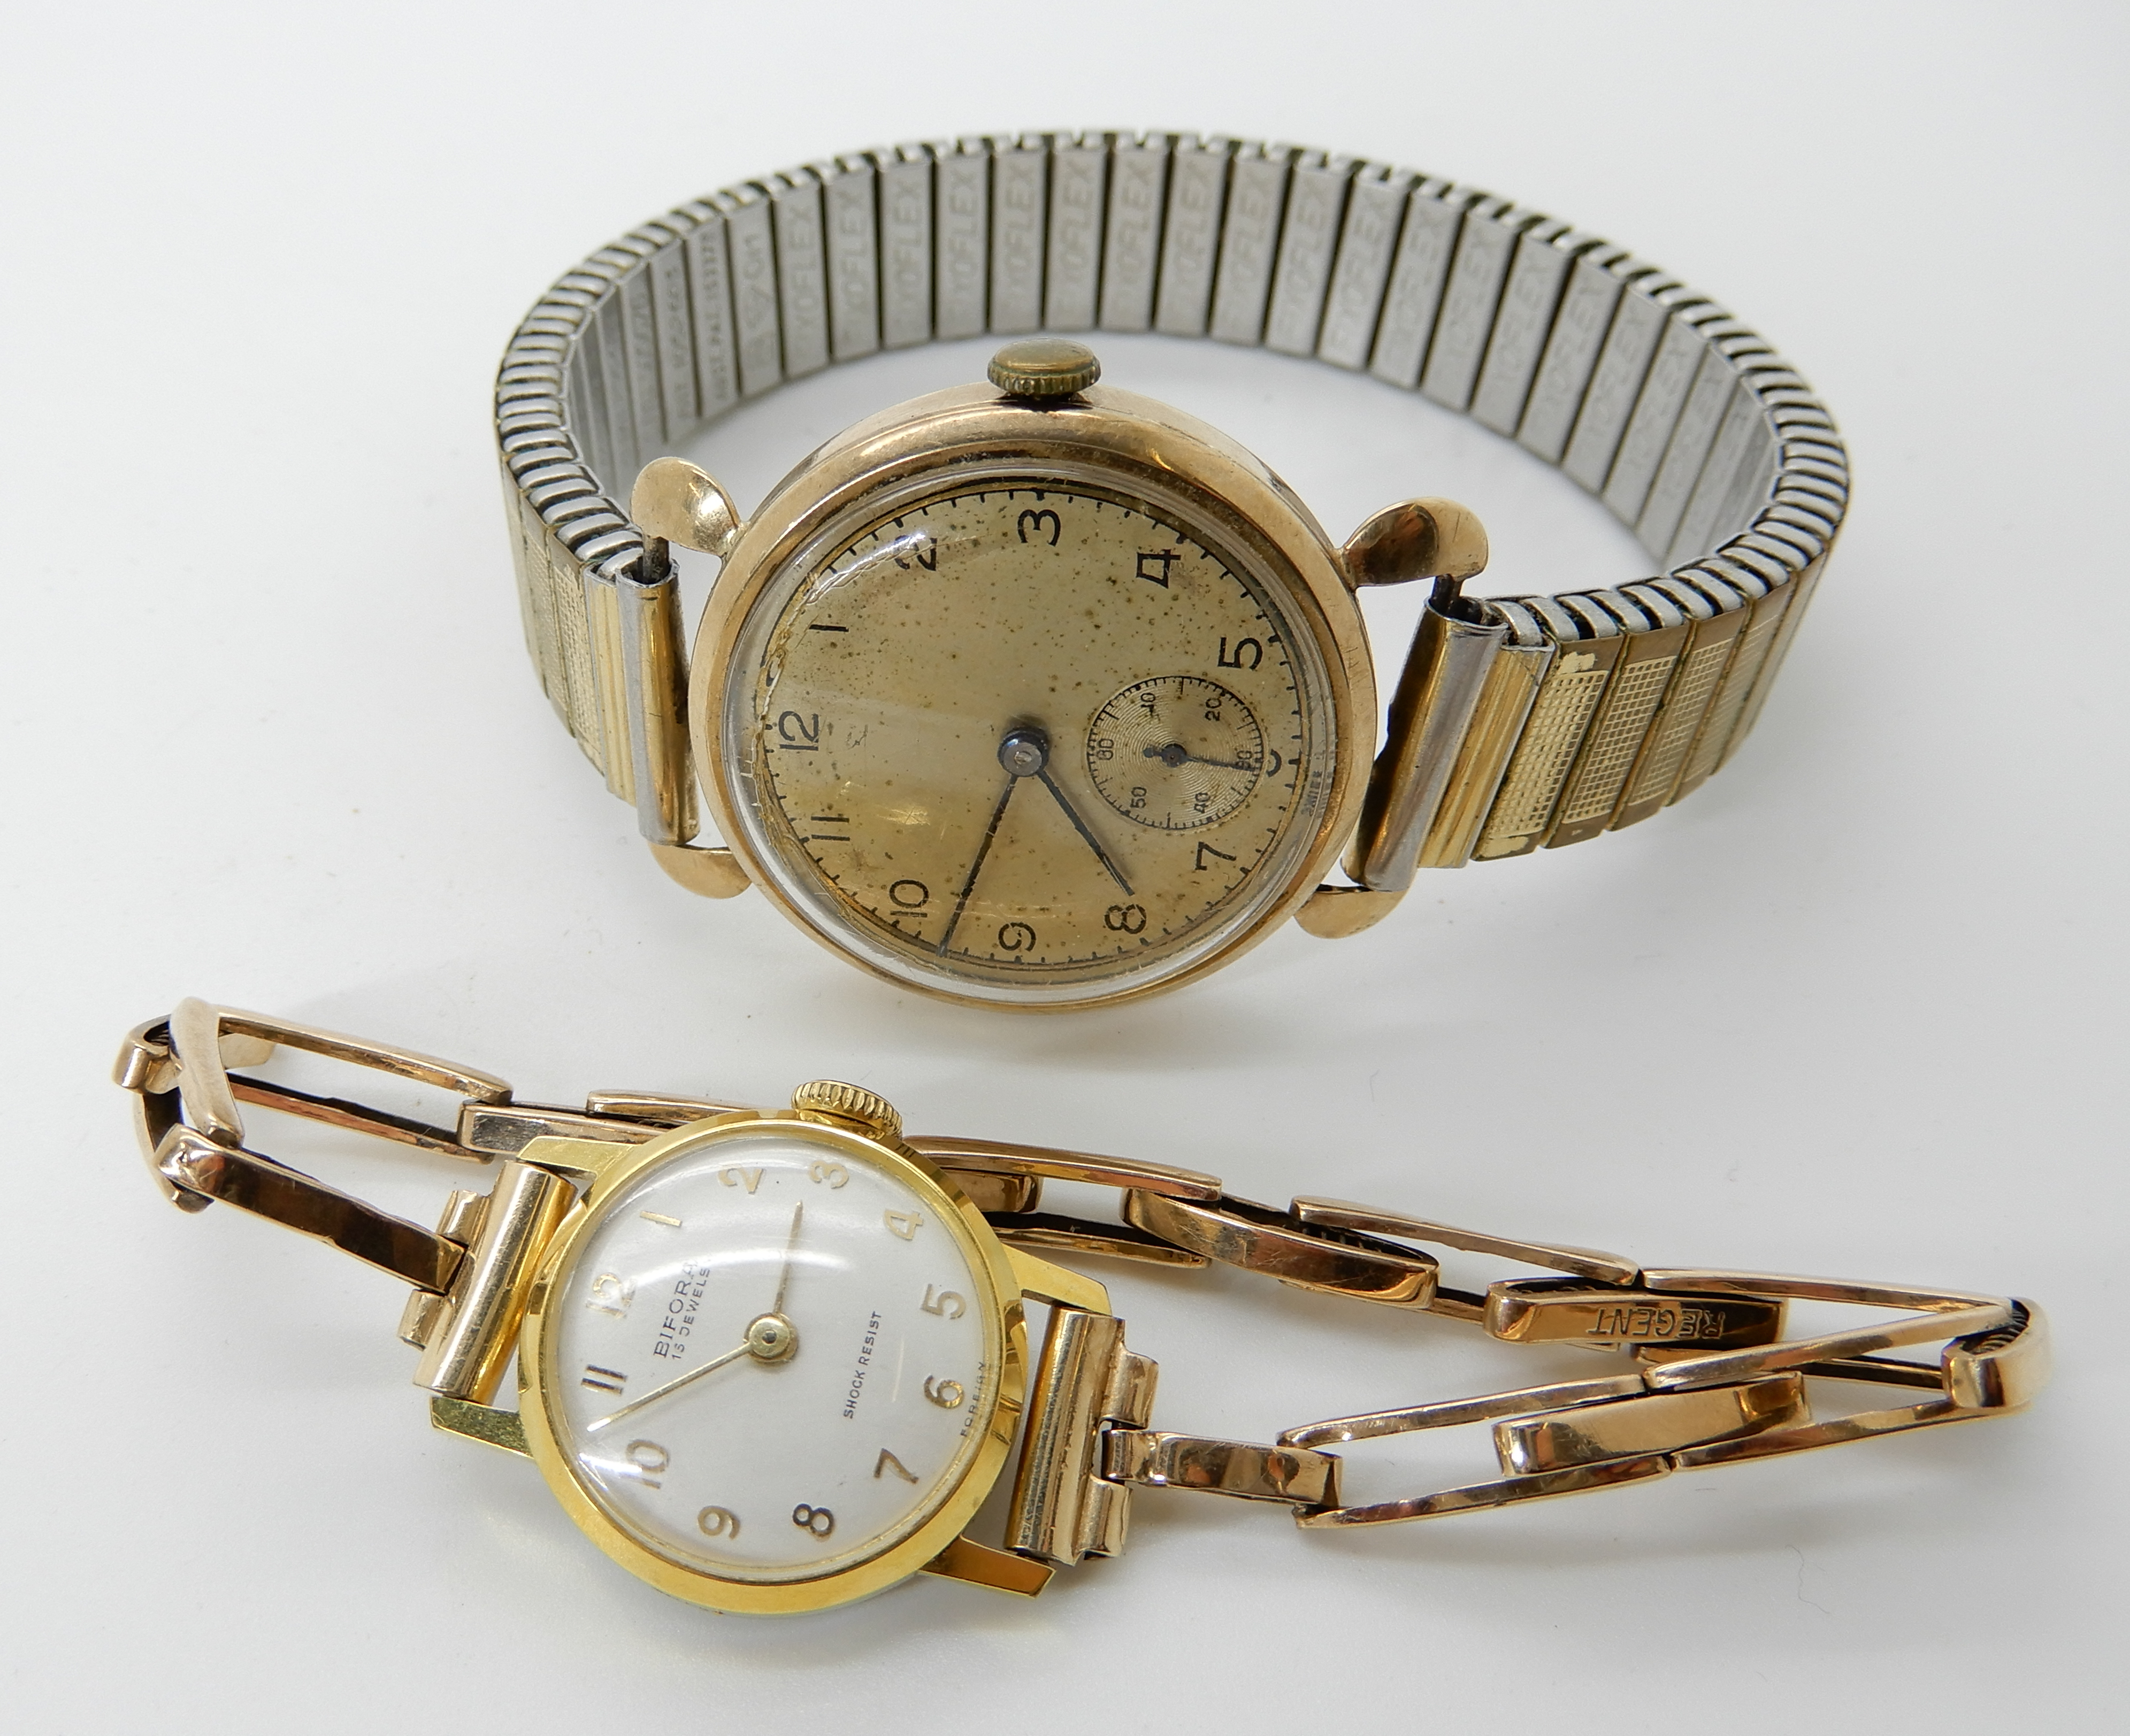 Lot 5 - A 9ct gold gents vintage watch with gold plated strap together with a ladies Bifora watch with 9ct